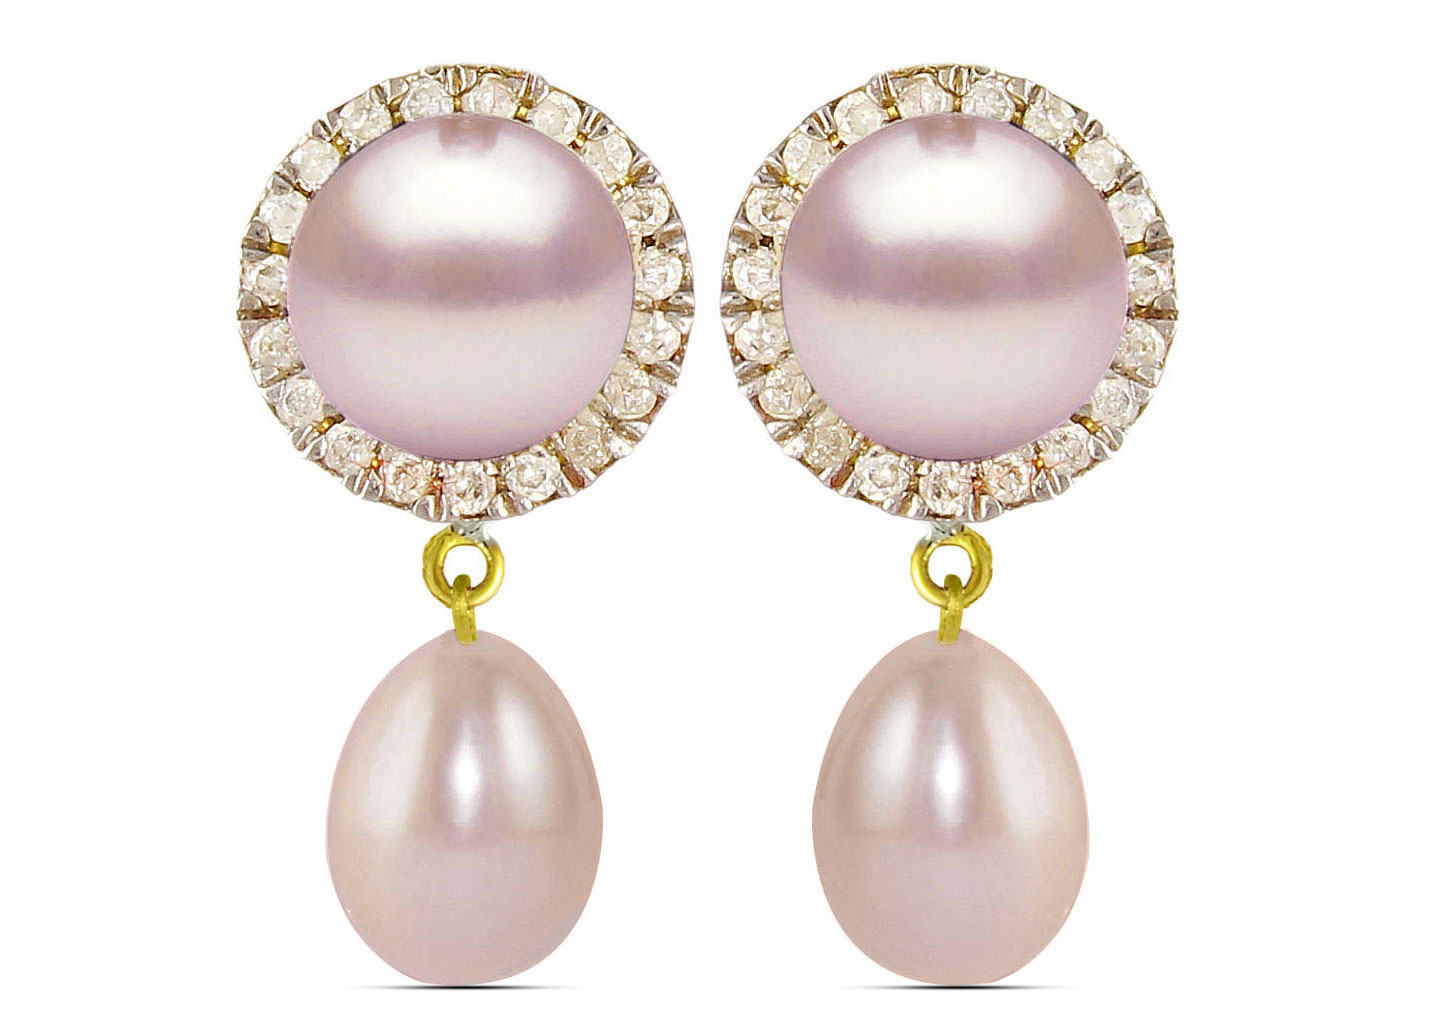 Vera Perla 18K Solid Gold 0.20ct Genuine Diamonds and 6-7 mm Purple Pearl Earrings